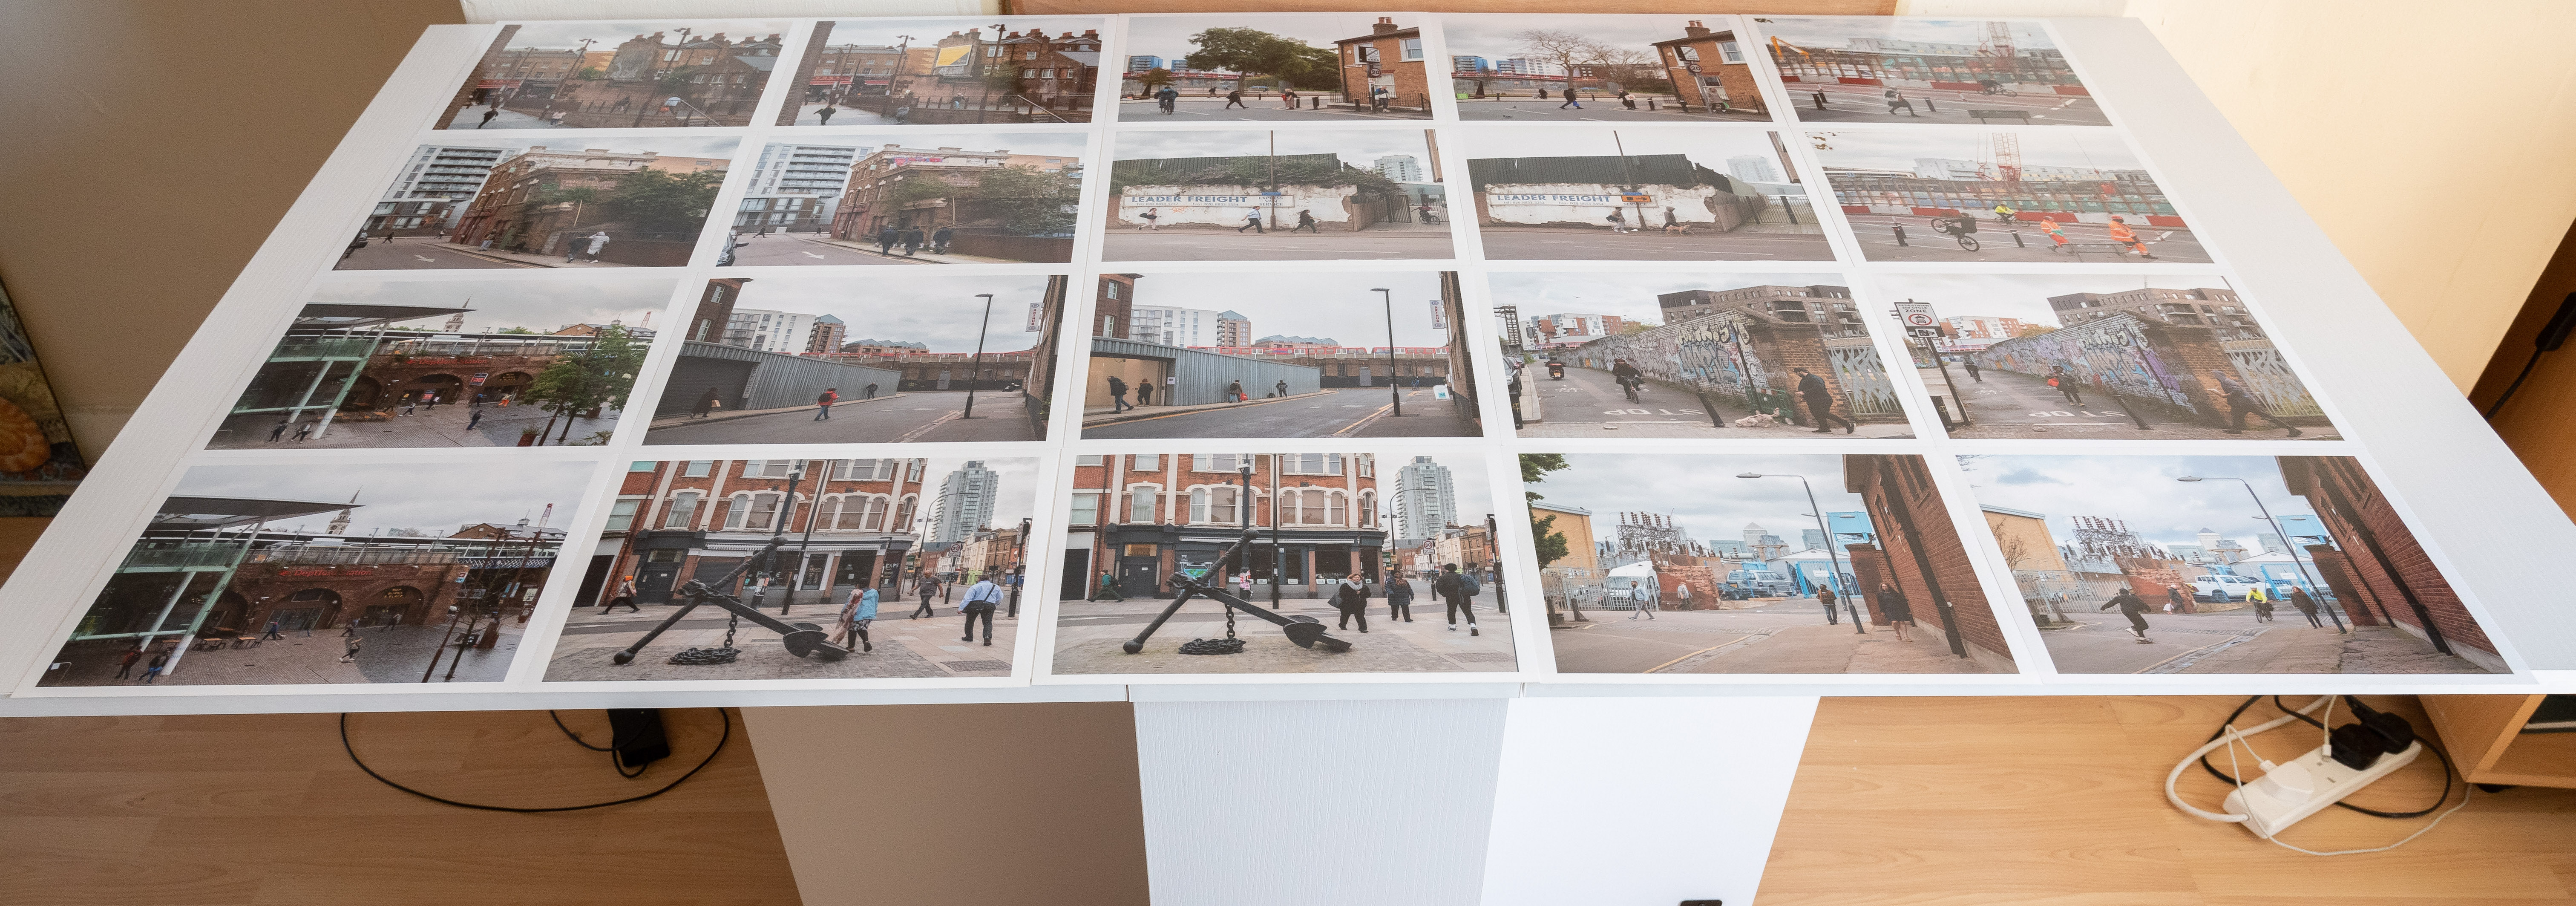 10x8 inch Prints I presented to Friends and Family for Advice with Editing II